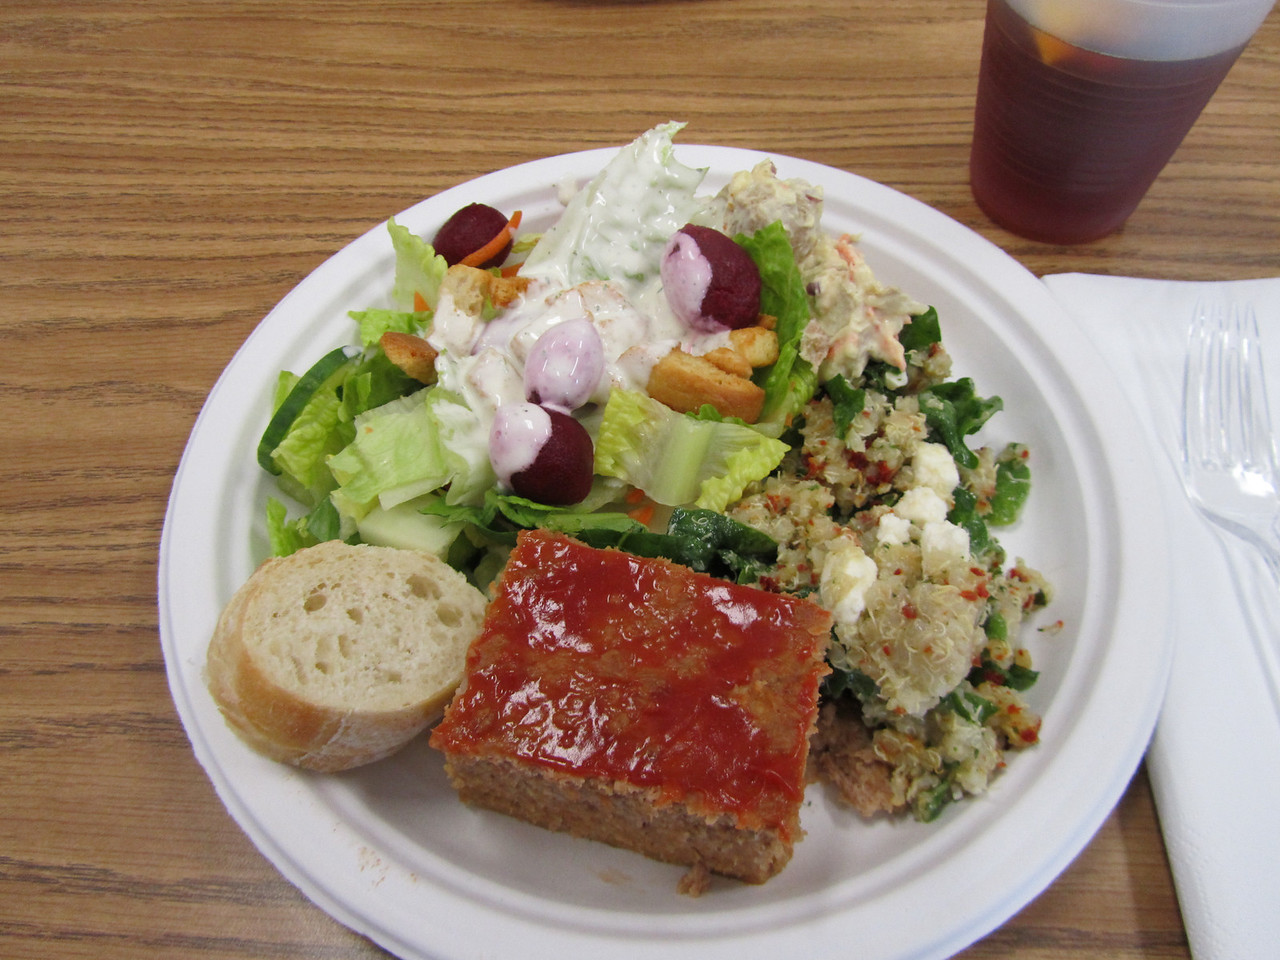 Dinner at the Medina Middle School. Of all the meals provided, this was by-far the best! Turkey meatloaf, quinoa with spinach, sun dried tomatoes, and goat cheese, baby red potato salad, green salad with all the fixings (including beets - yum), fresh baguettes.... Plate two was brussel sprouts with cranberries, green beans with slivered almonds, and some more salad. Fresh brewed ice tea with lemon washed it all down. Great job Medina.